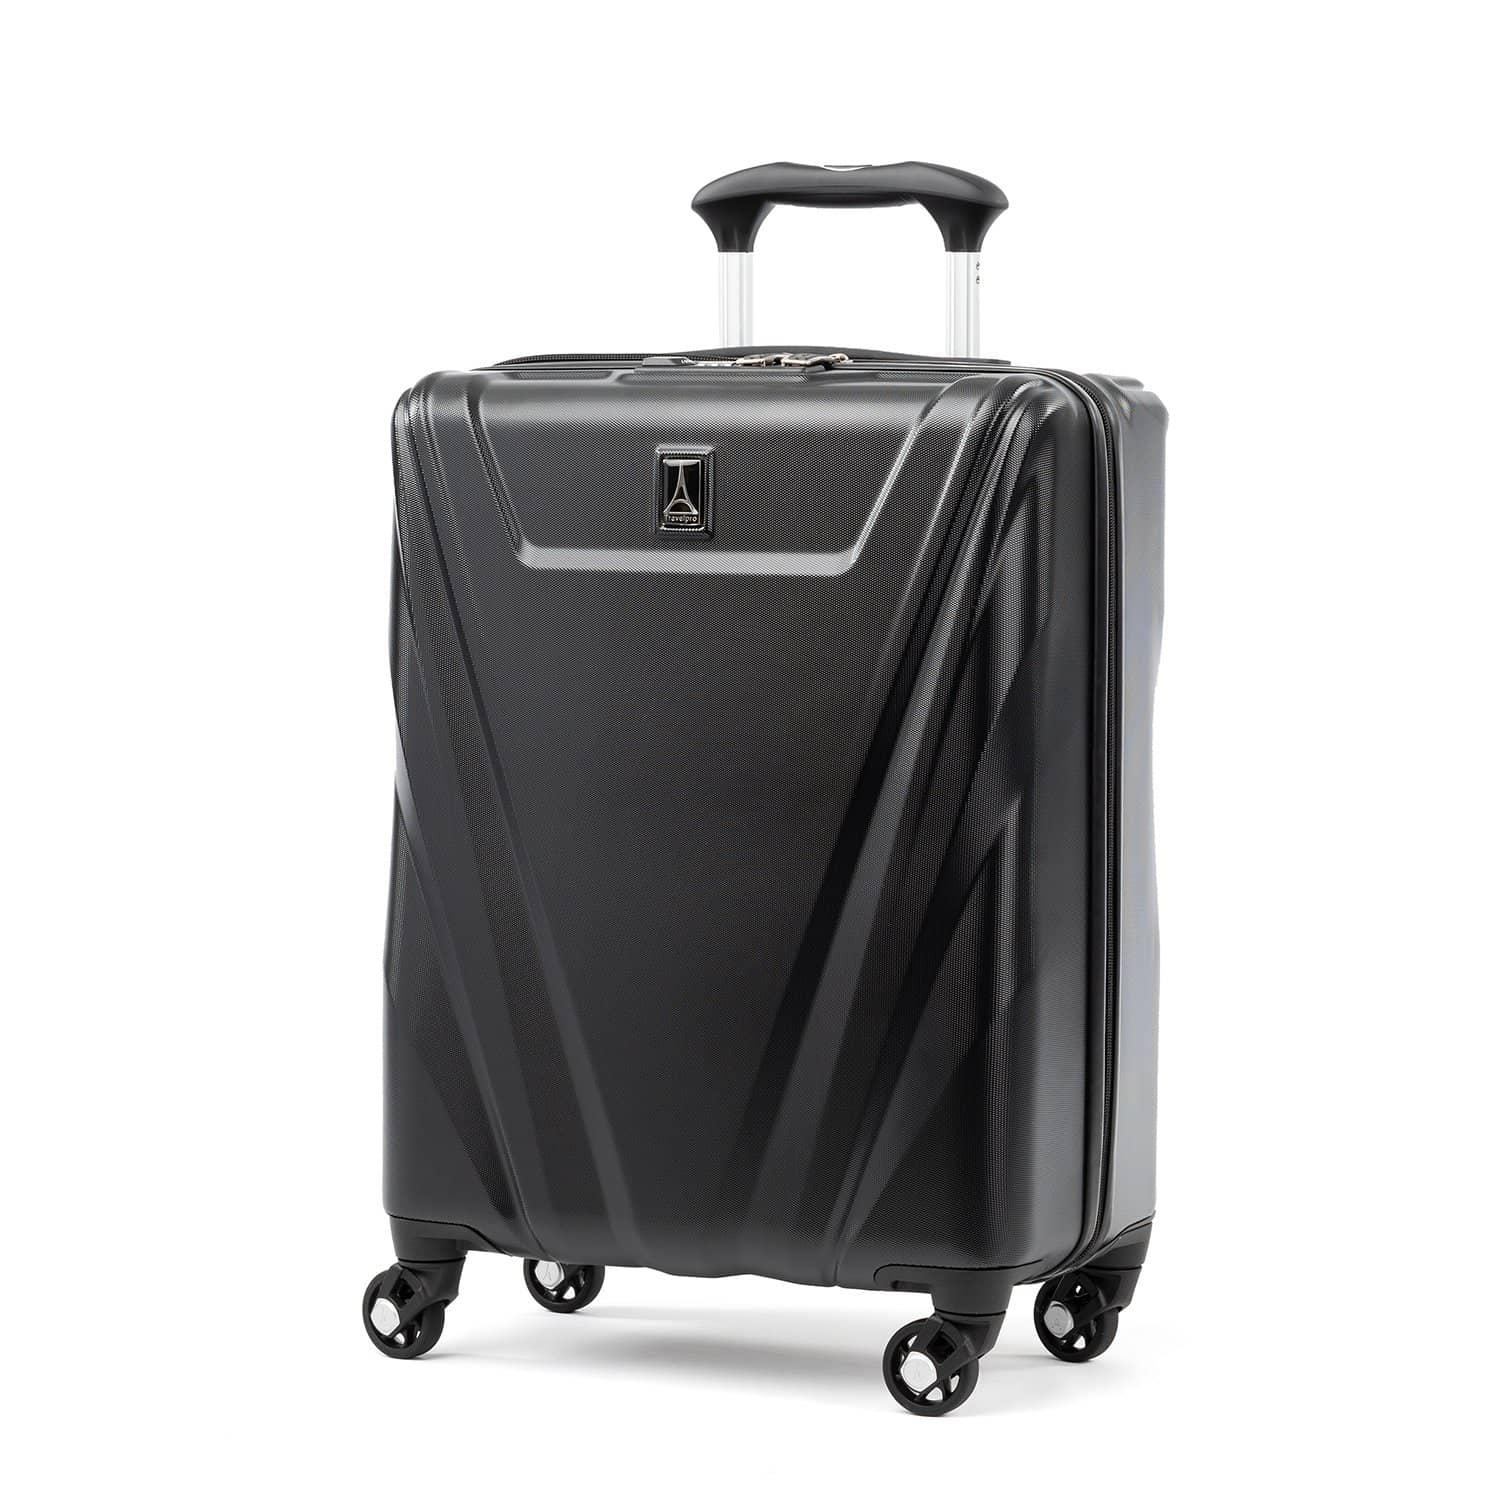 Maxlite® 5 55cm Carry-On Hardside Spinner